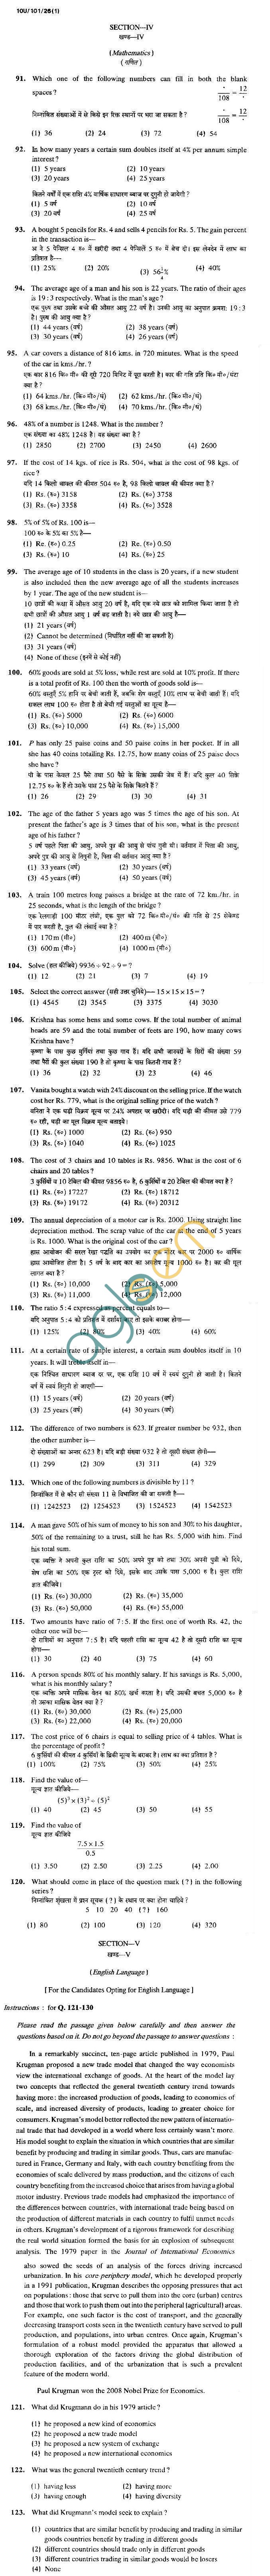 BHU UET 2010 B.Com Question Paper